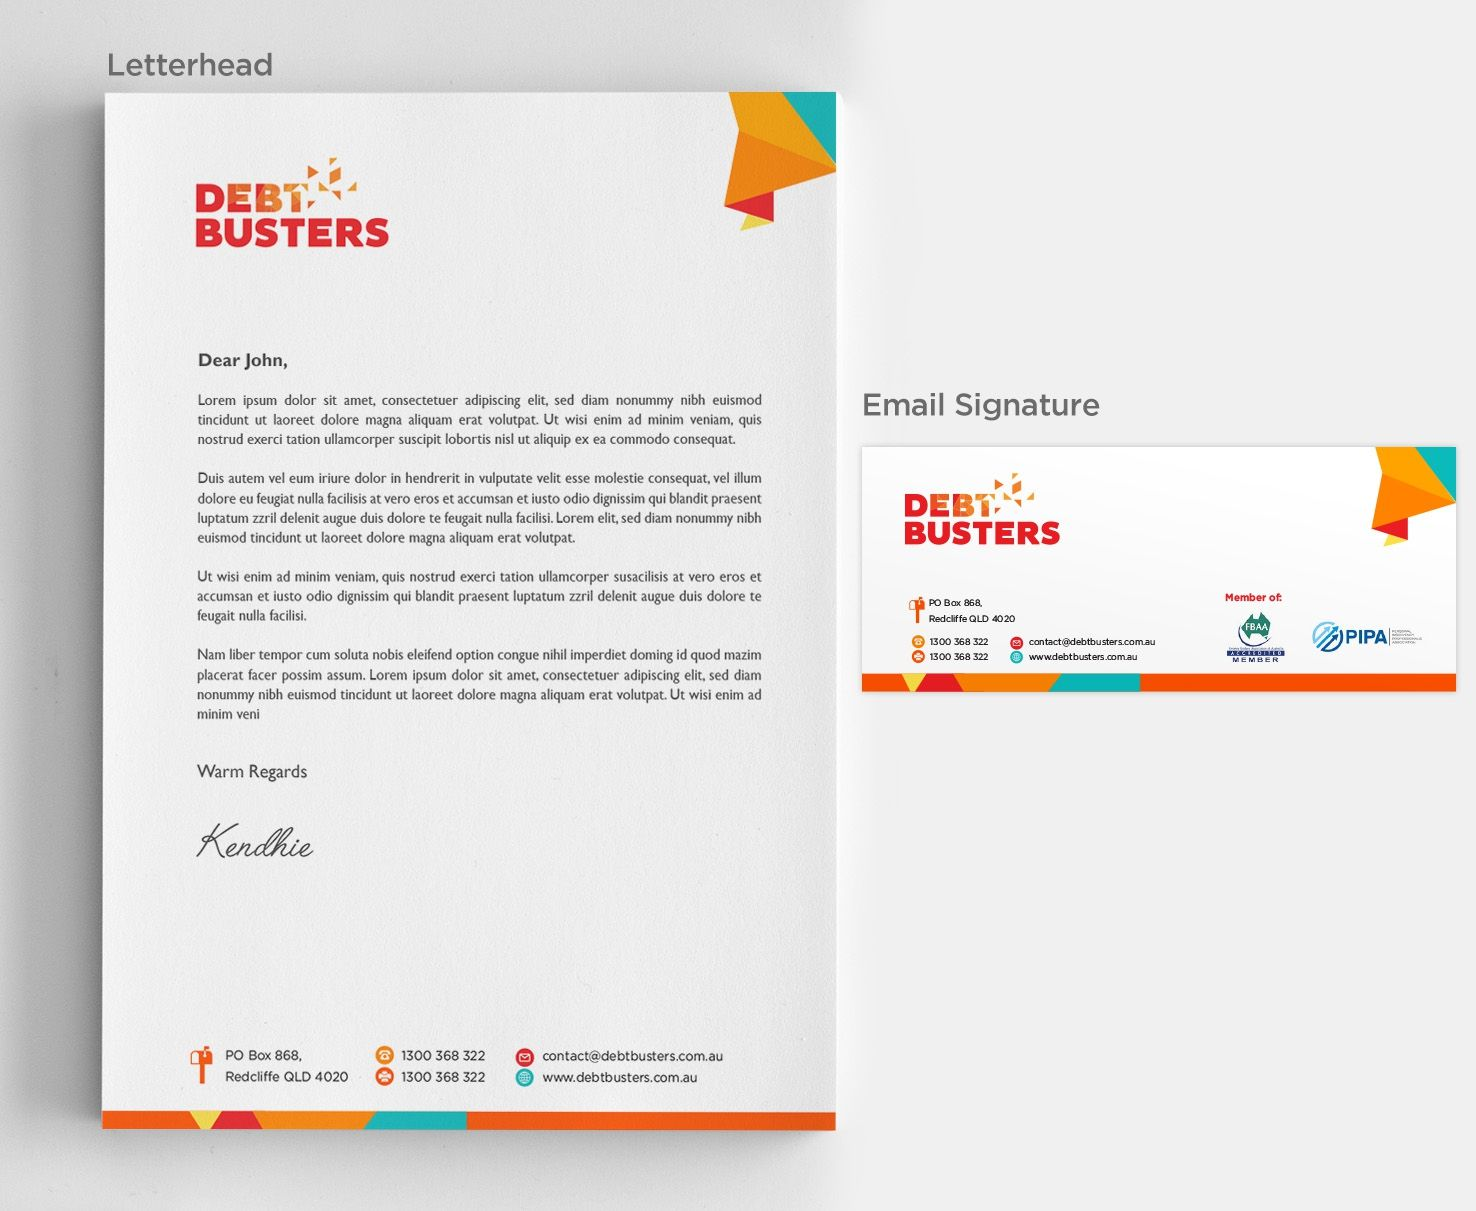 Design 32 by kendhie create a digital letterhead and